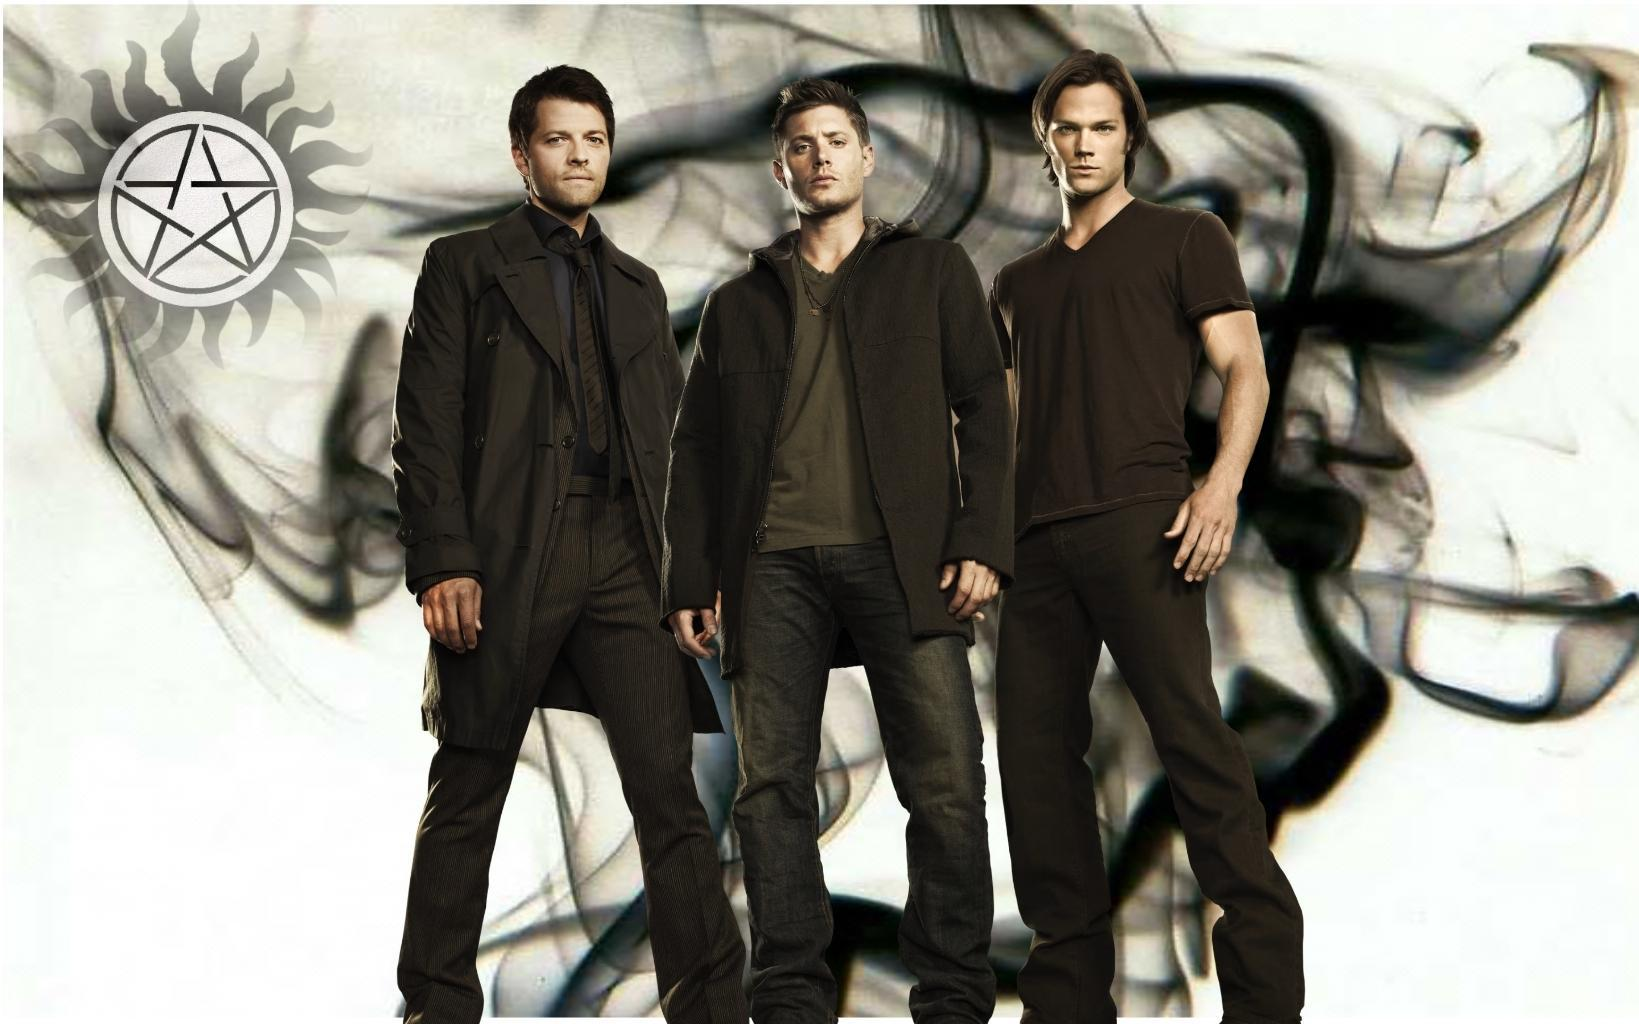 Here's the last question: Do you like Supernatural?